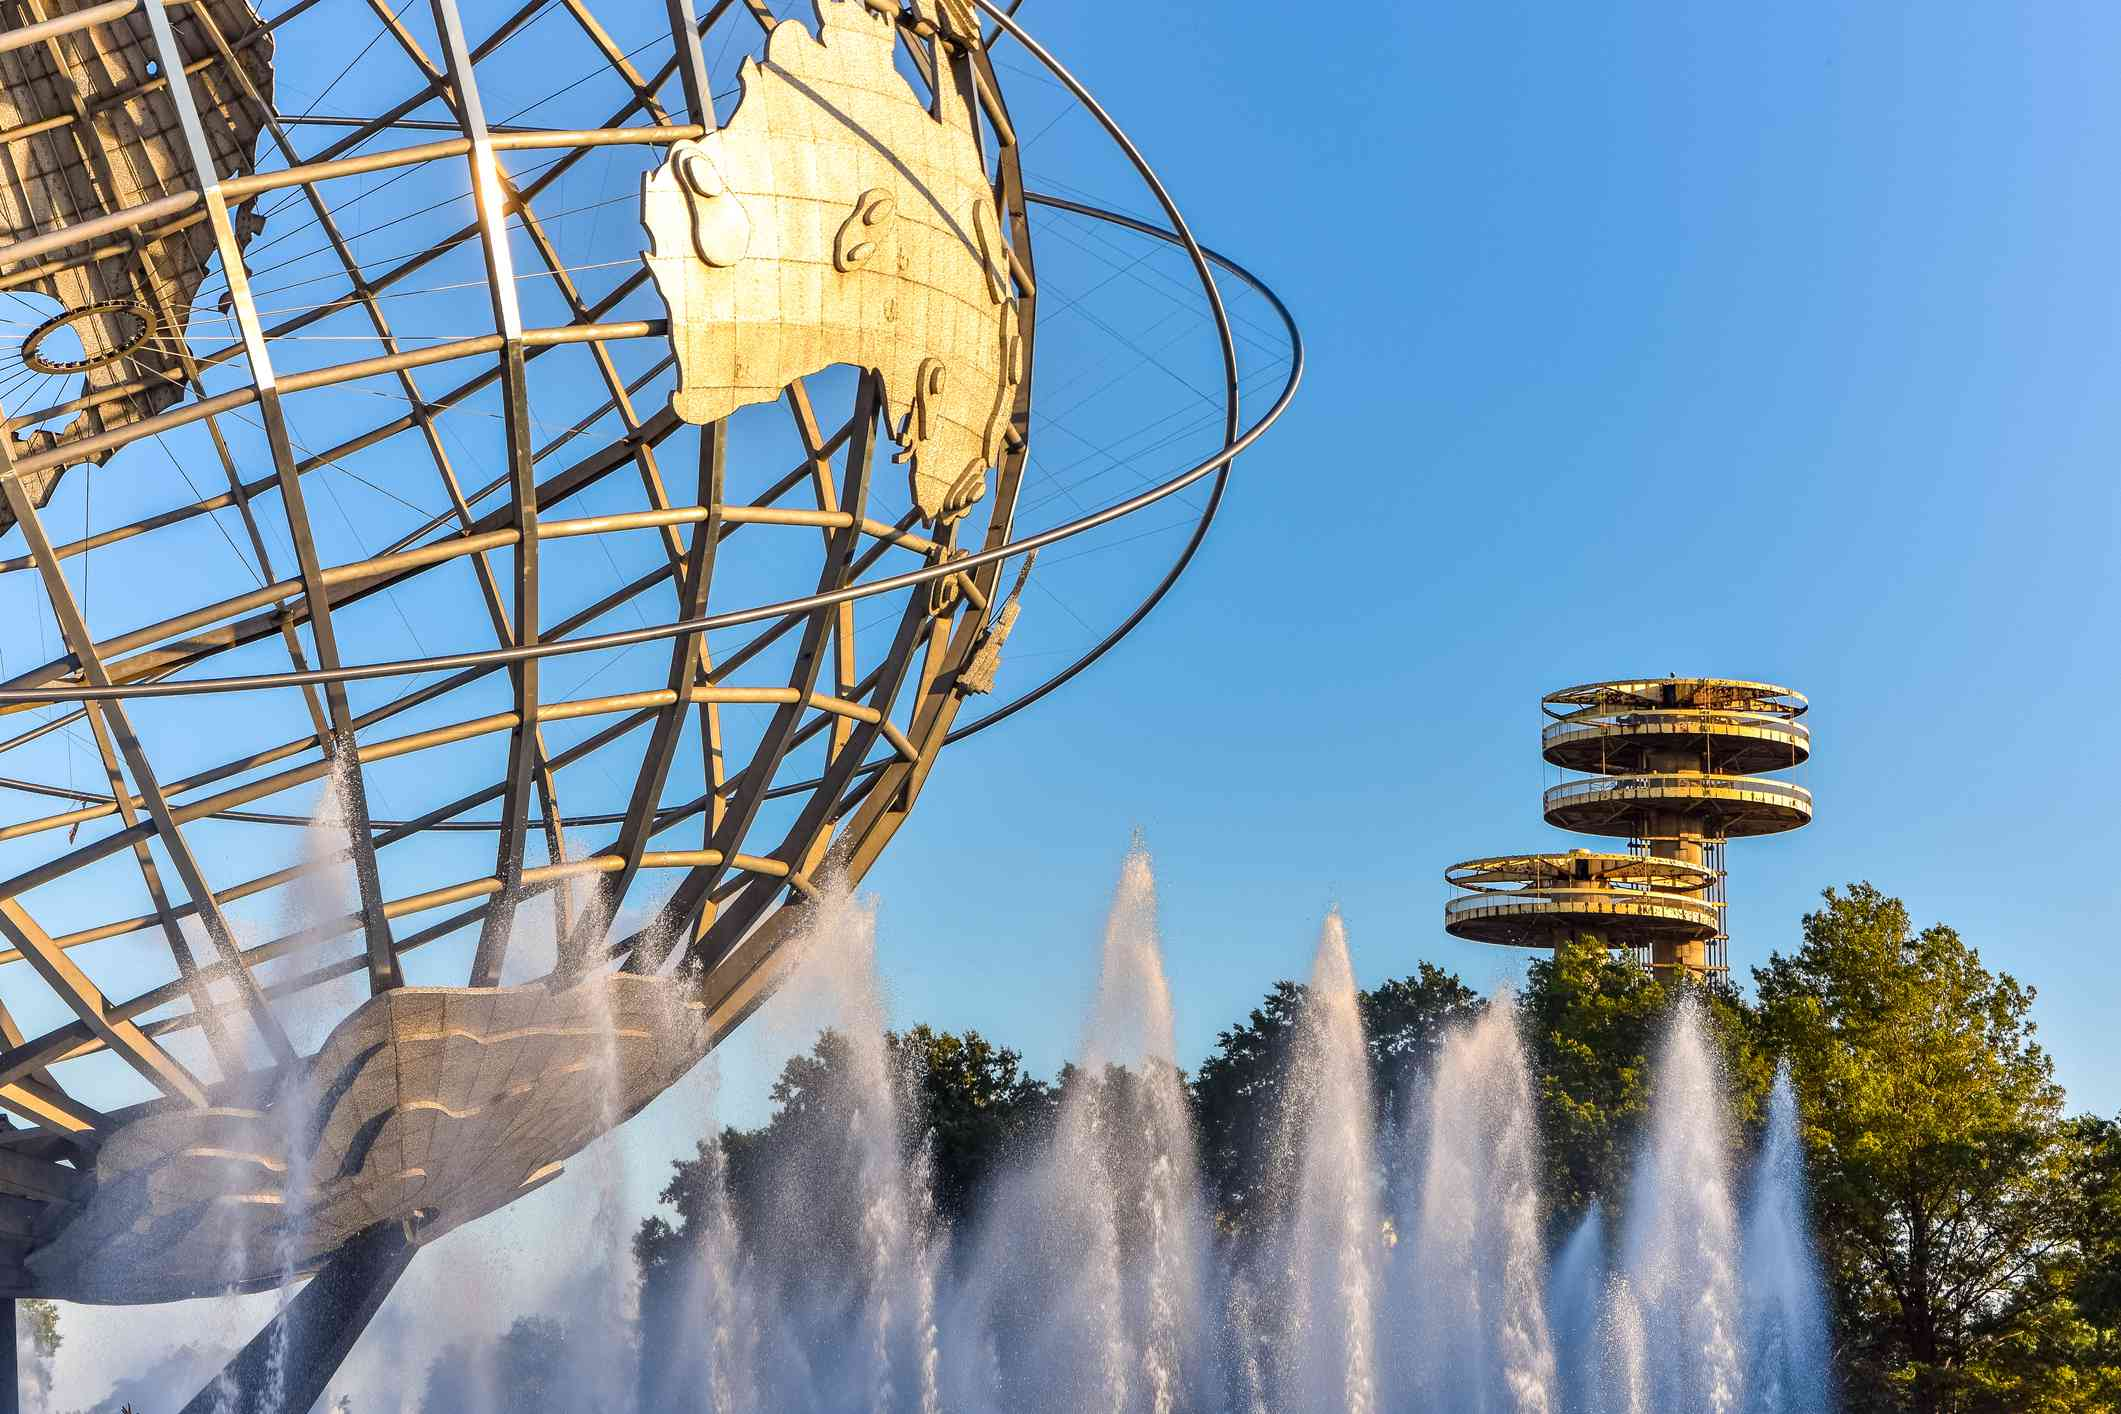 Flushing Meadows Park in Queens